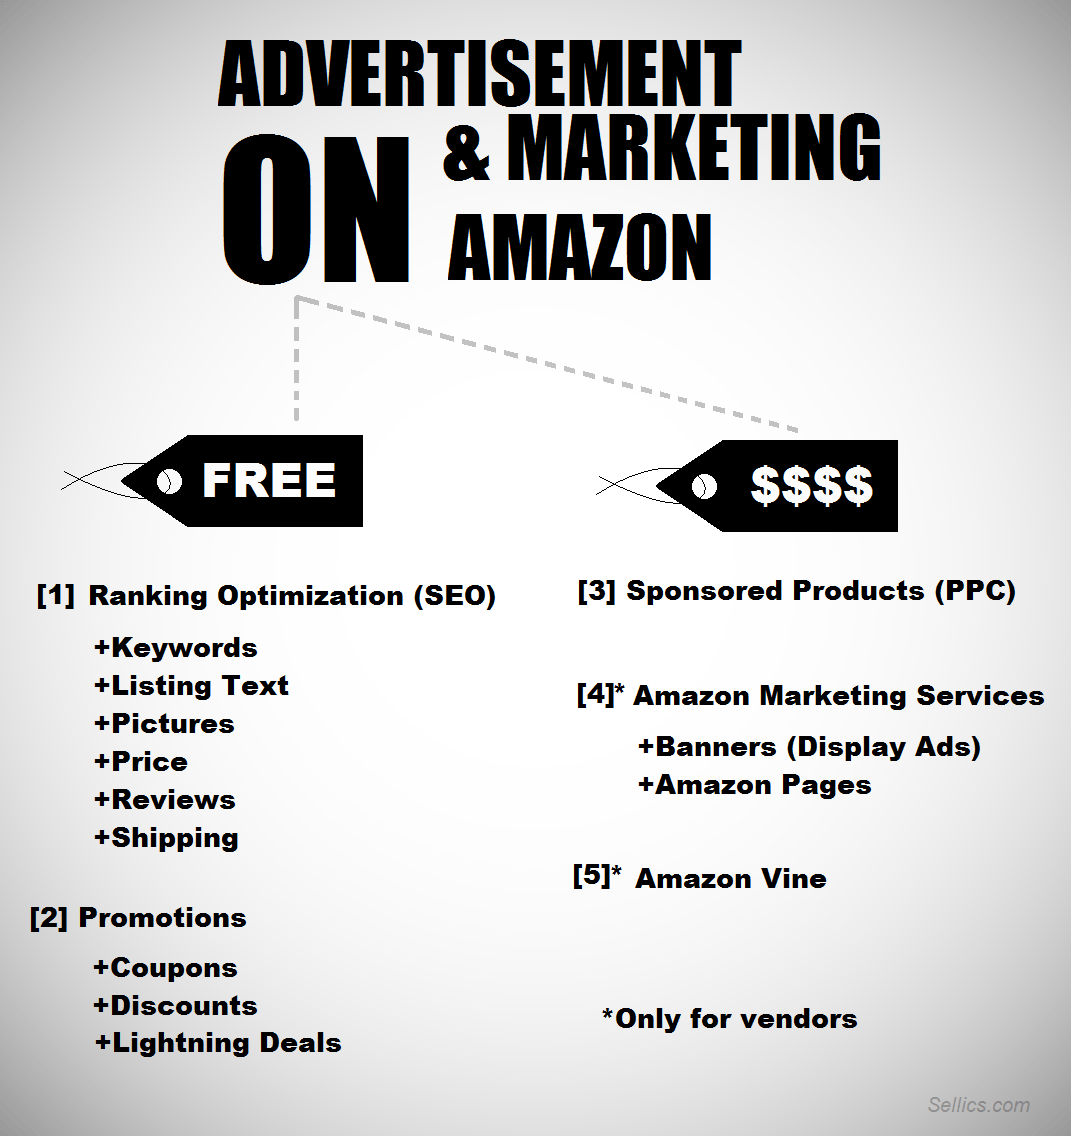 ON amazon advertisement & marketing overview